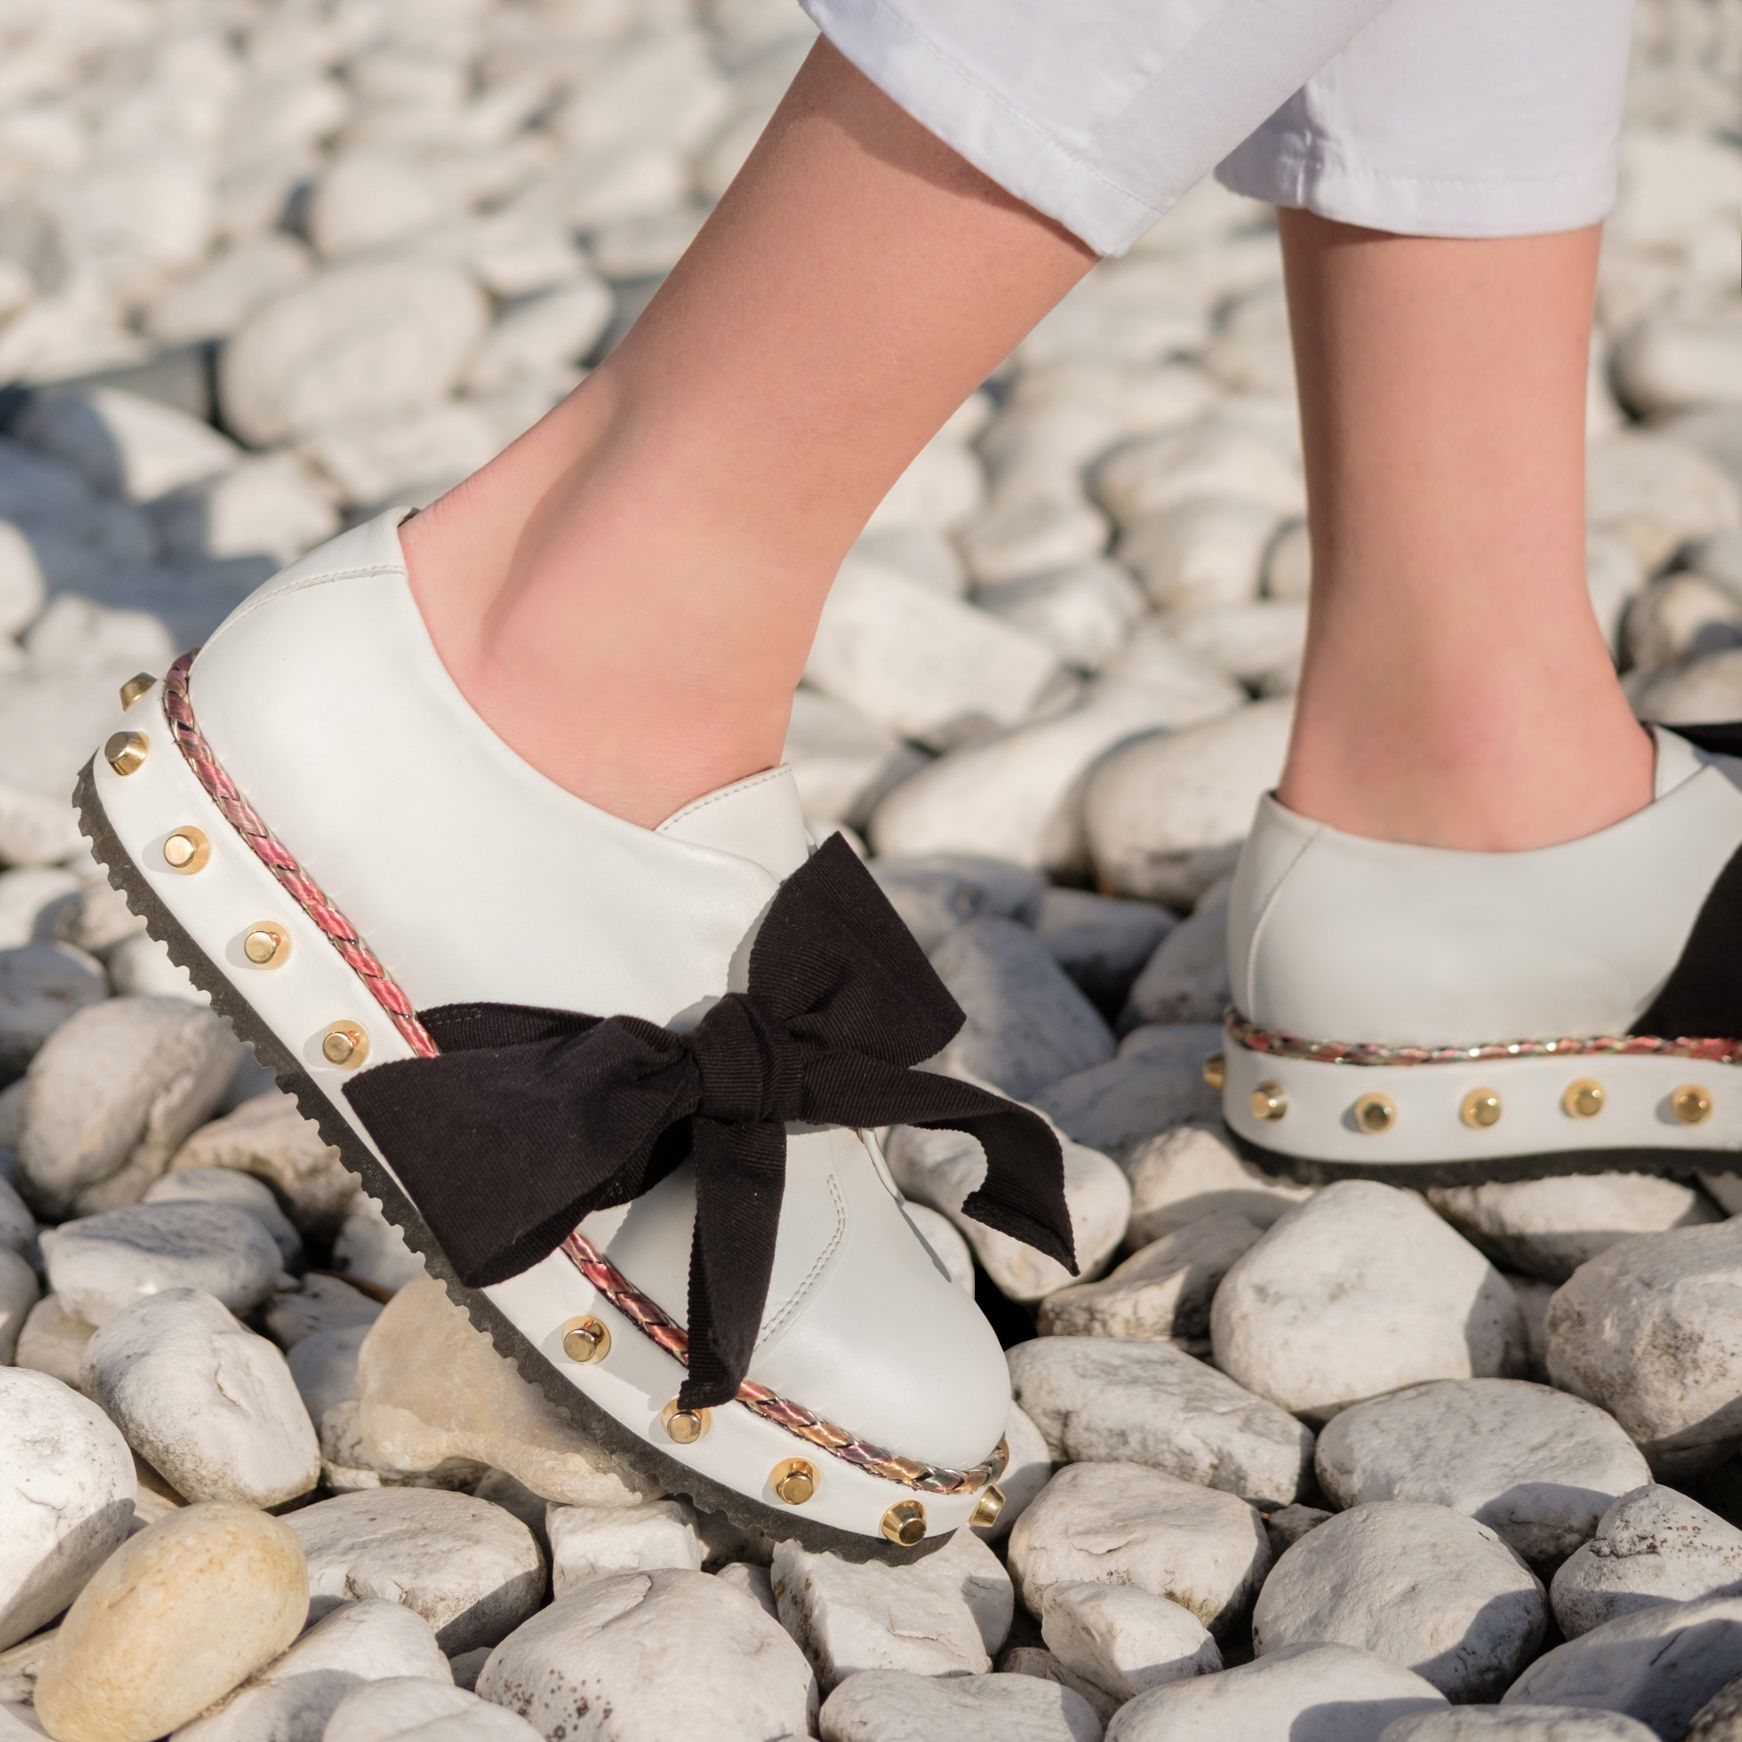 A meswear mainstay reimagined with whimsy, wit and a sprinkling of studs. Step into the brogue with bow. #FollowtheRibbon #agl #aglshoes #brogue #white #bow #ribbon